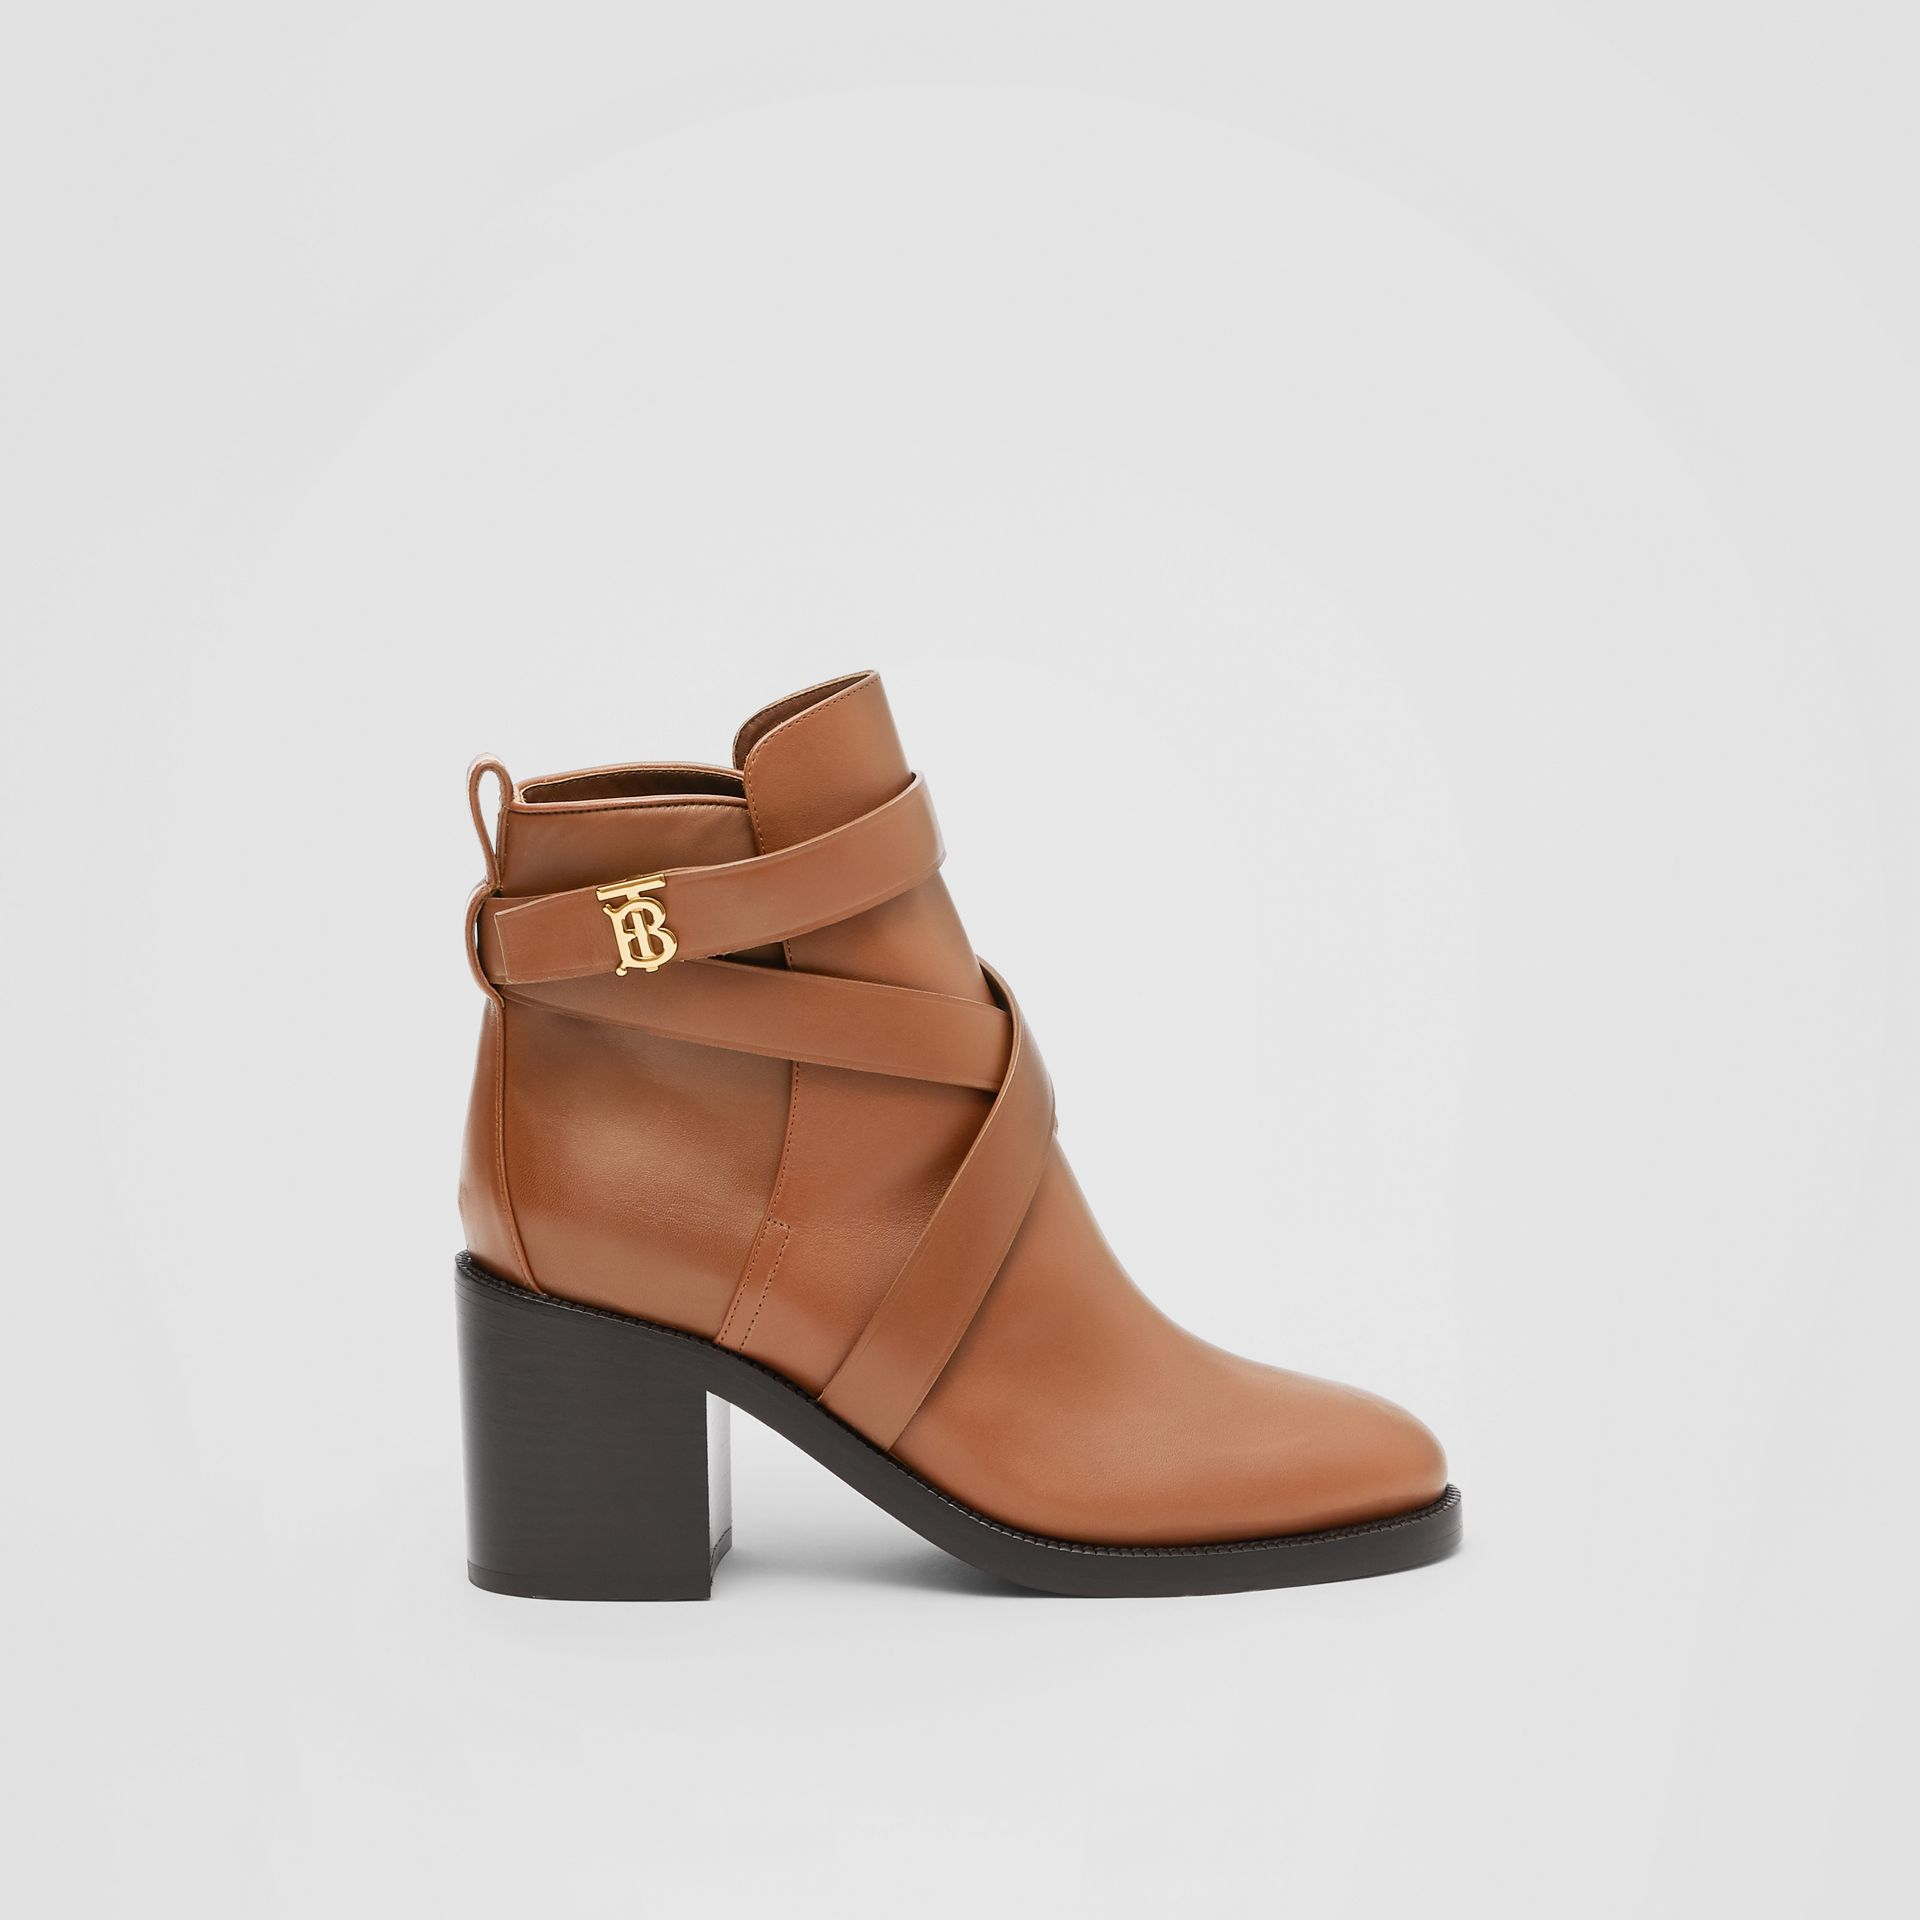 Monogram Motif Leather Ankle Boots in Tan - Women | Burberry Canada - gallery image 4